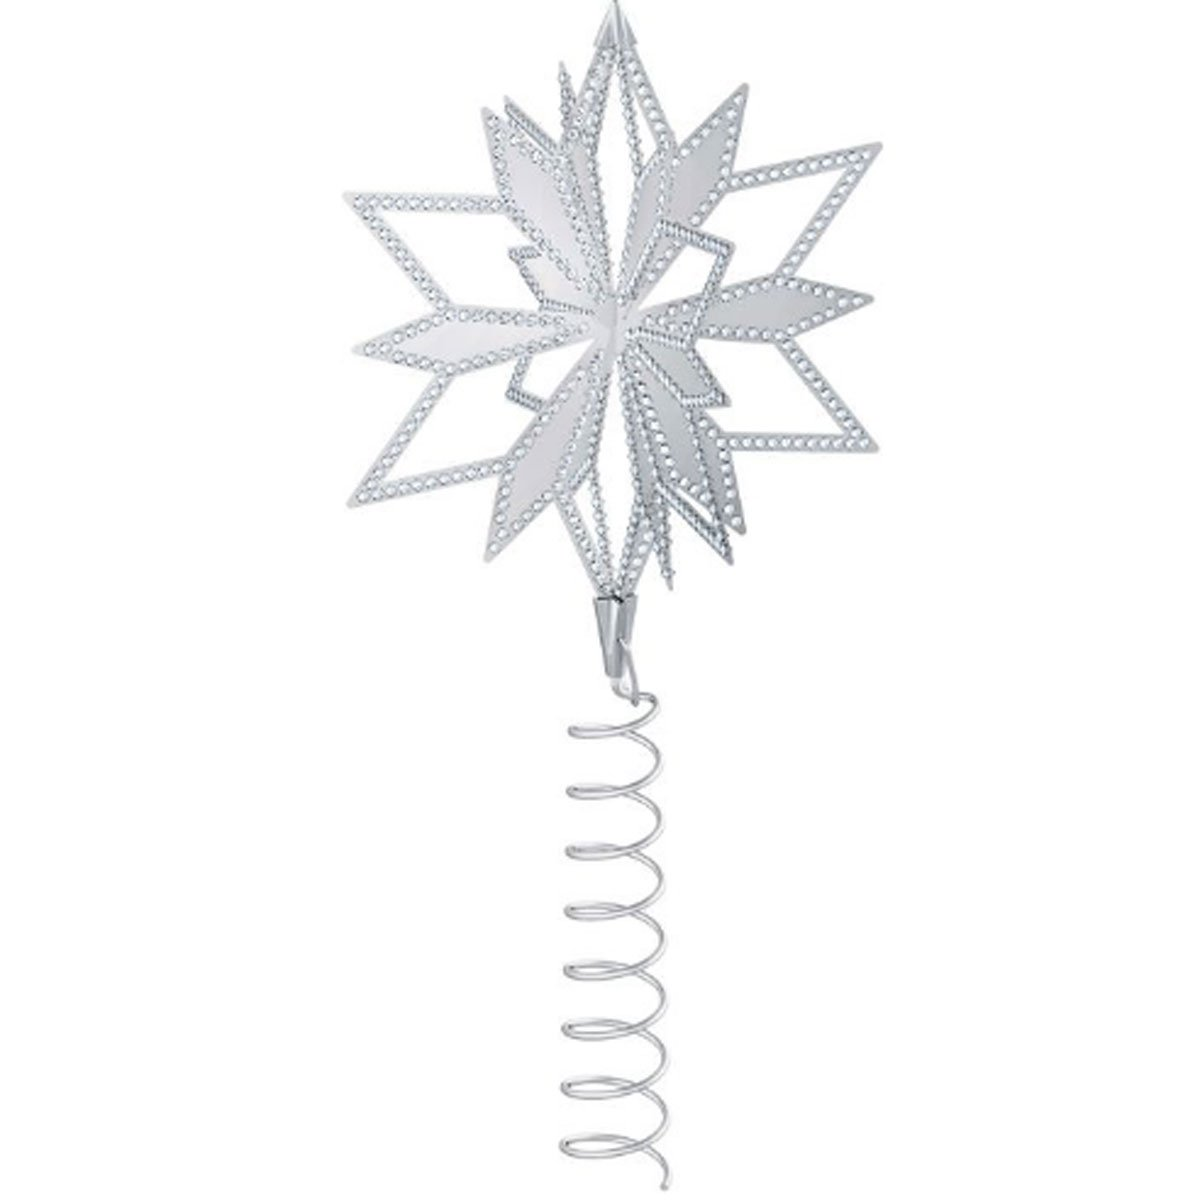 Swarovski Crystal #5064262, Christmas Star Tree Topper